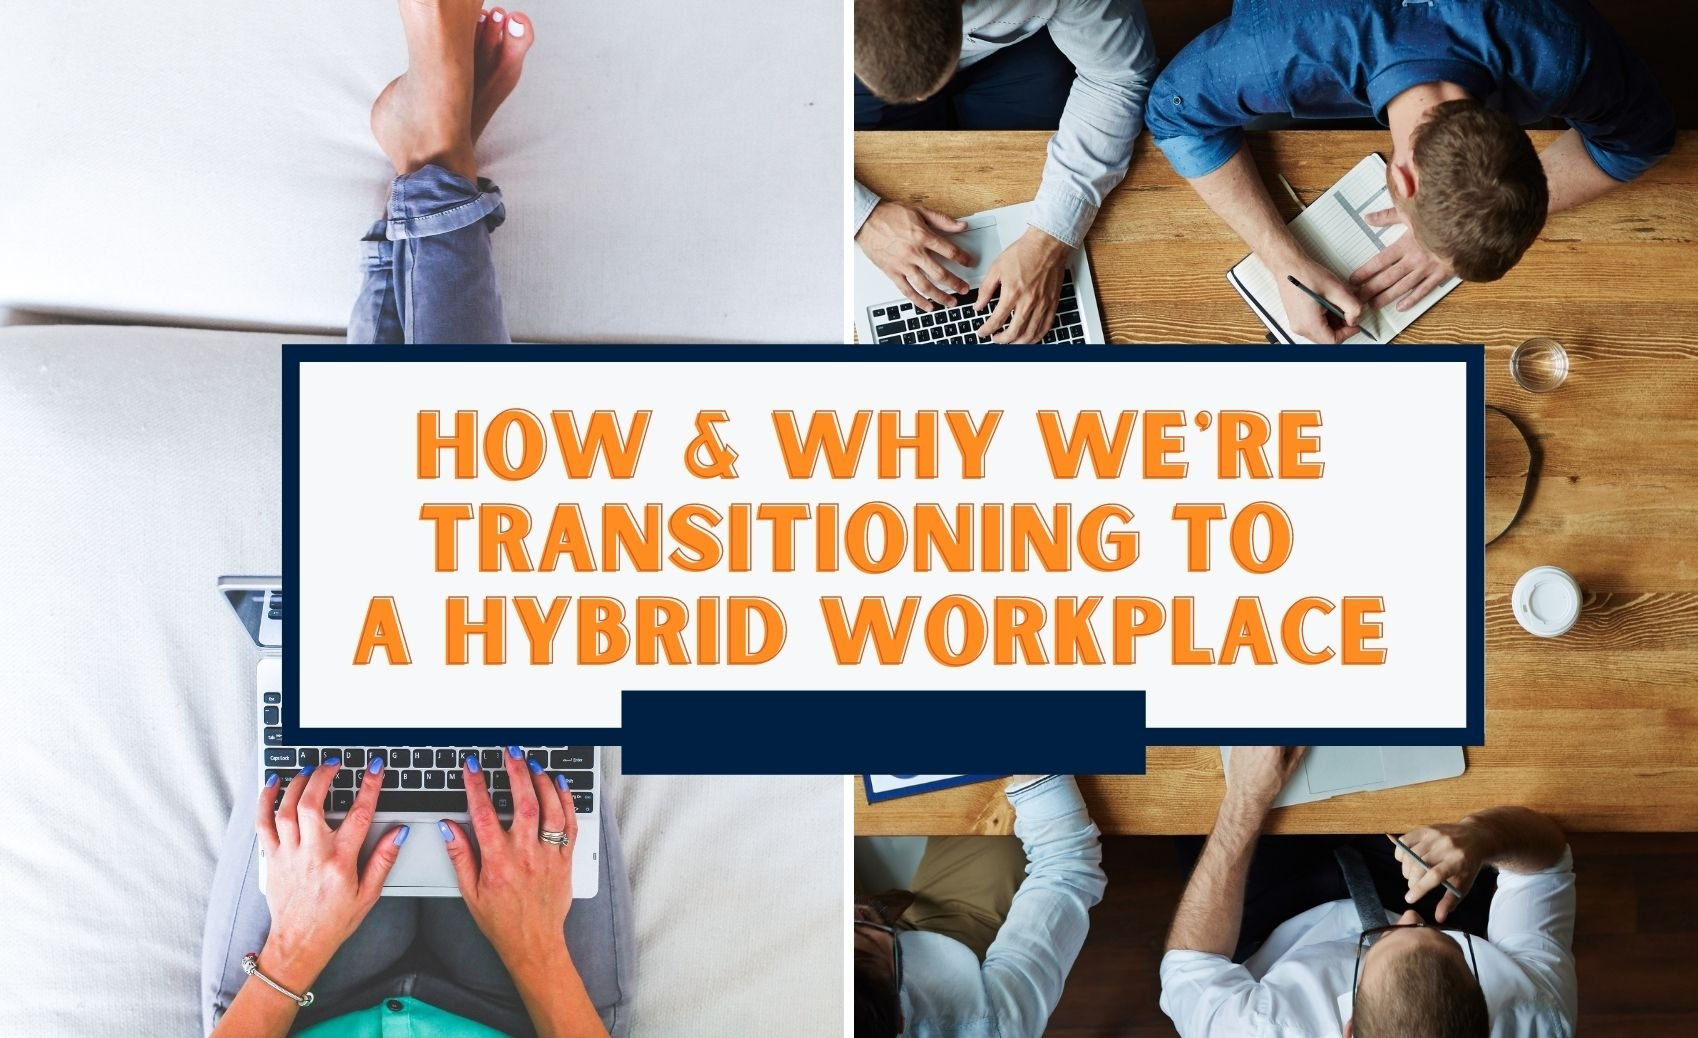 How and why we are transitioning to a hybrid workplace post-pandemic